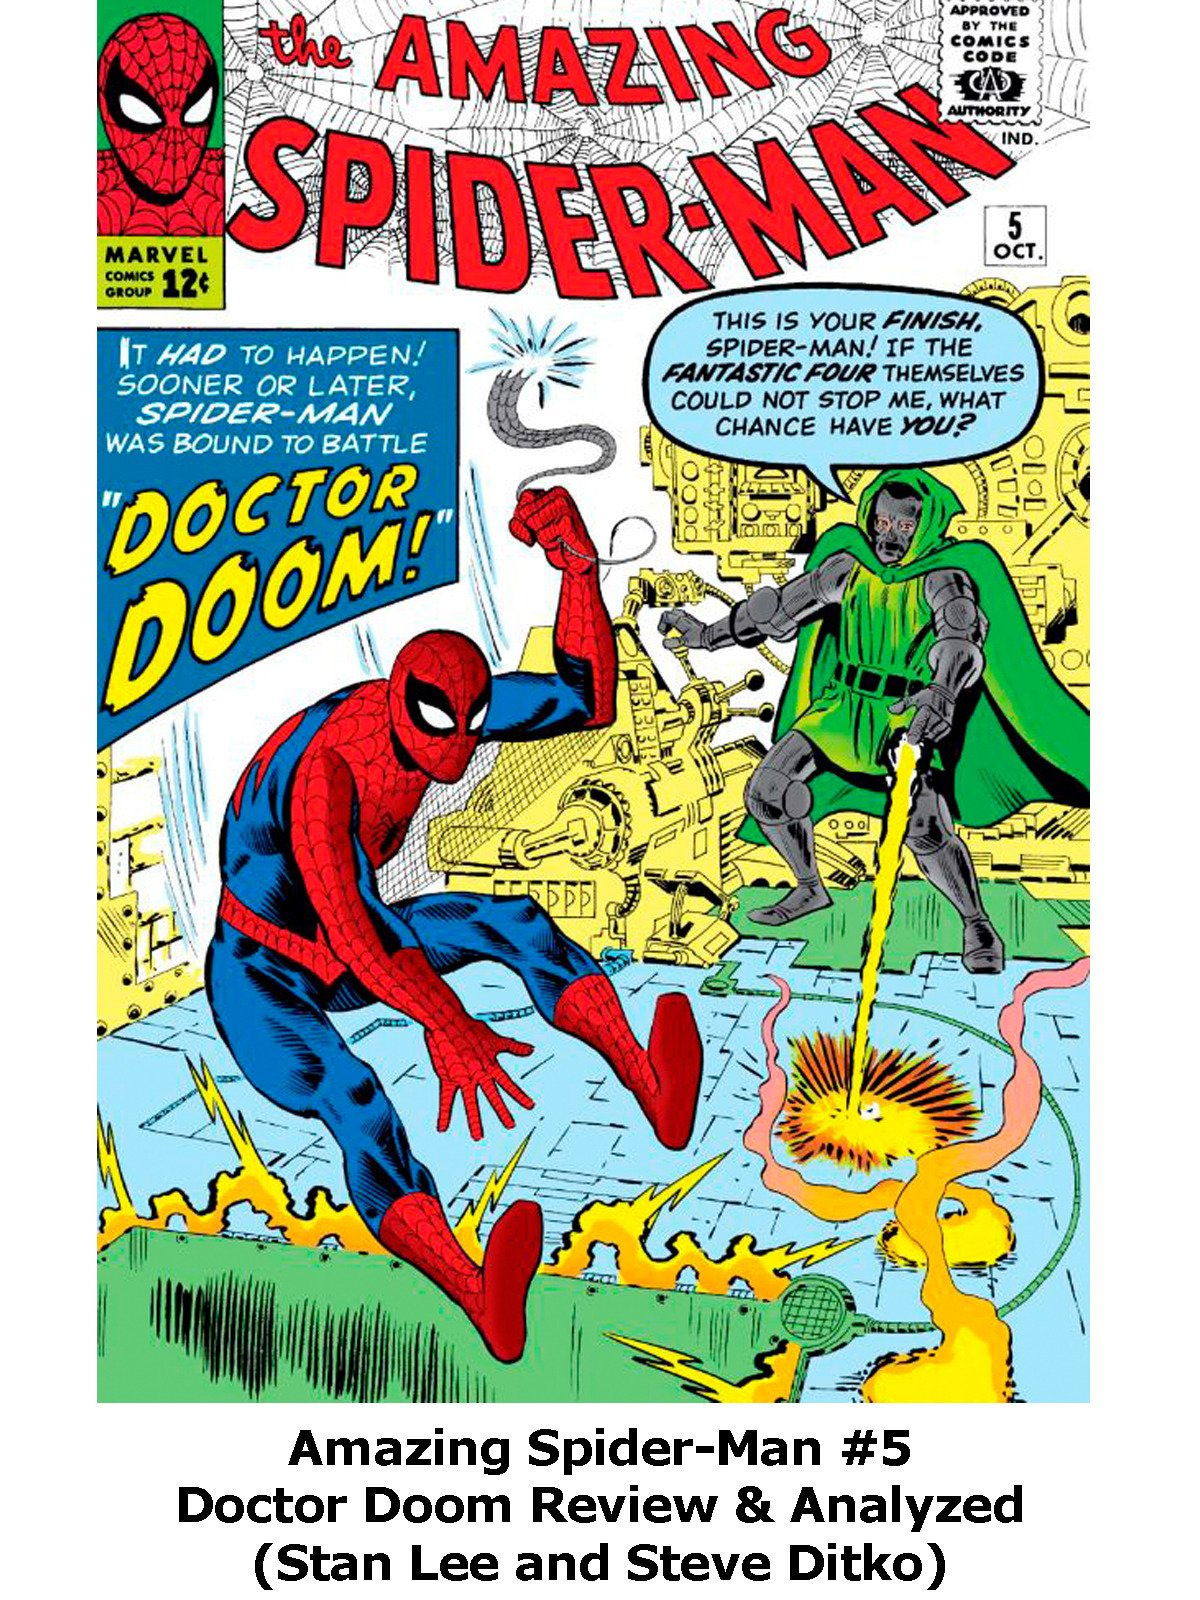 Review: Amazing Spider-Man #5 Doctor Doom Review & Analyzed (Stan Lee and Steve Ditko)